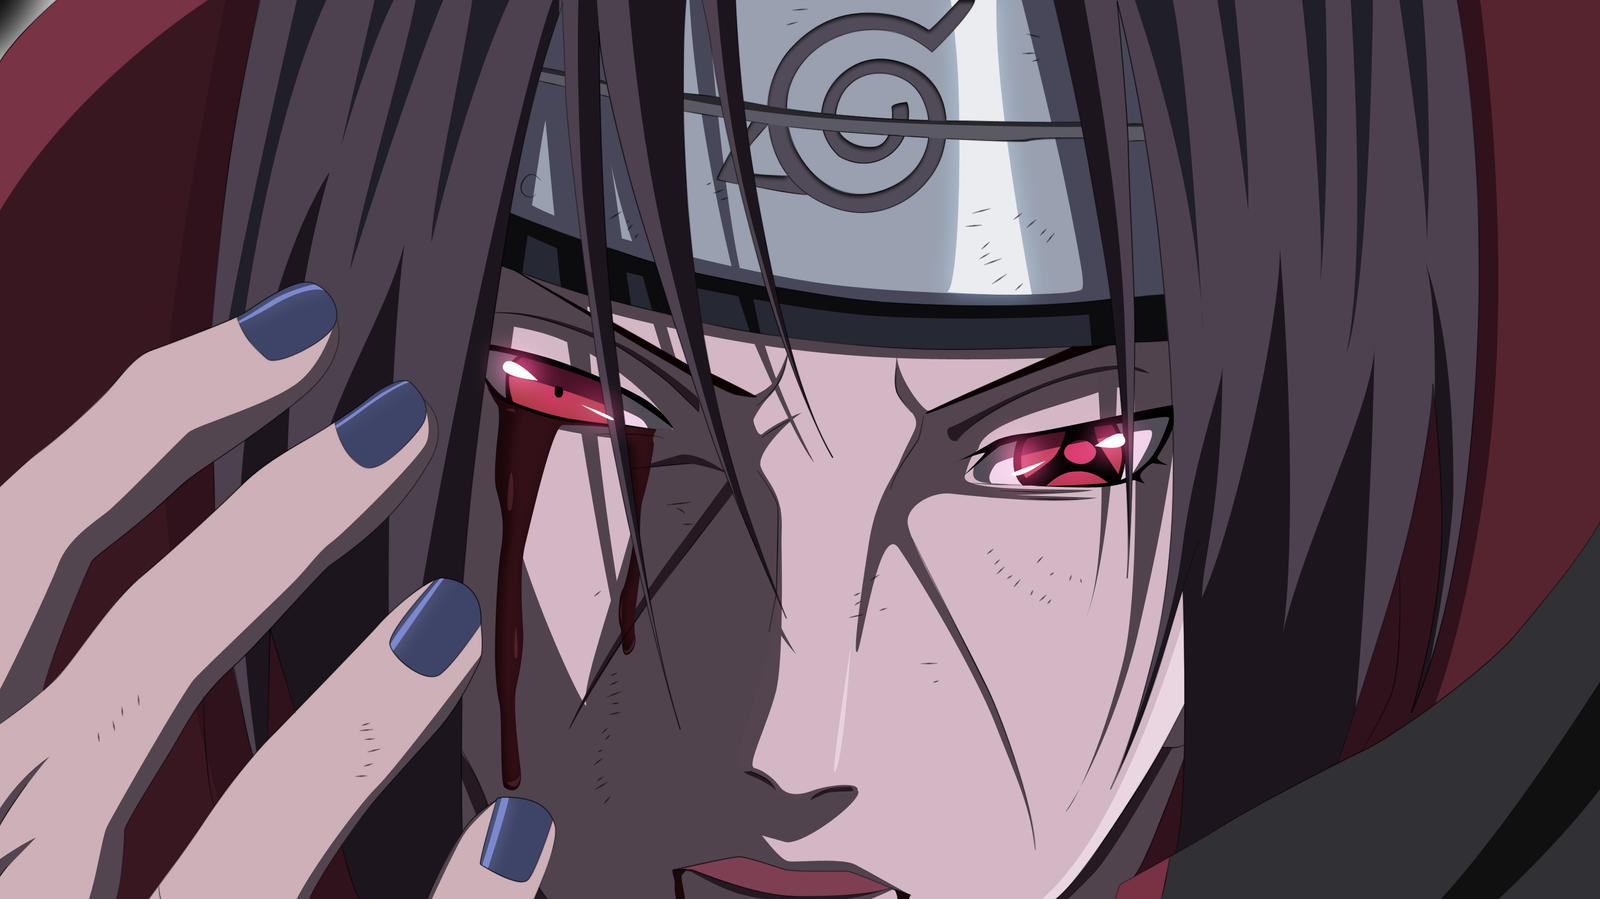 Itachi 2 By Kevenwill On DeviantArt